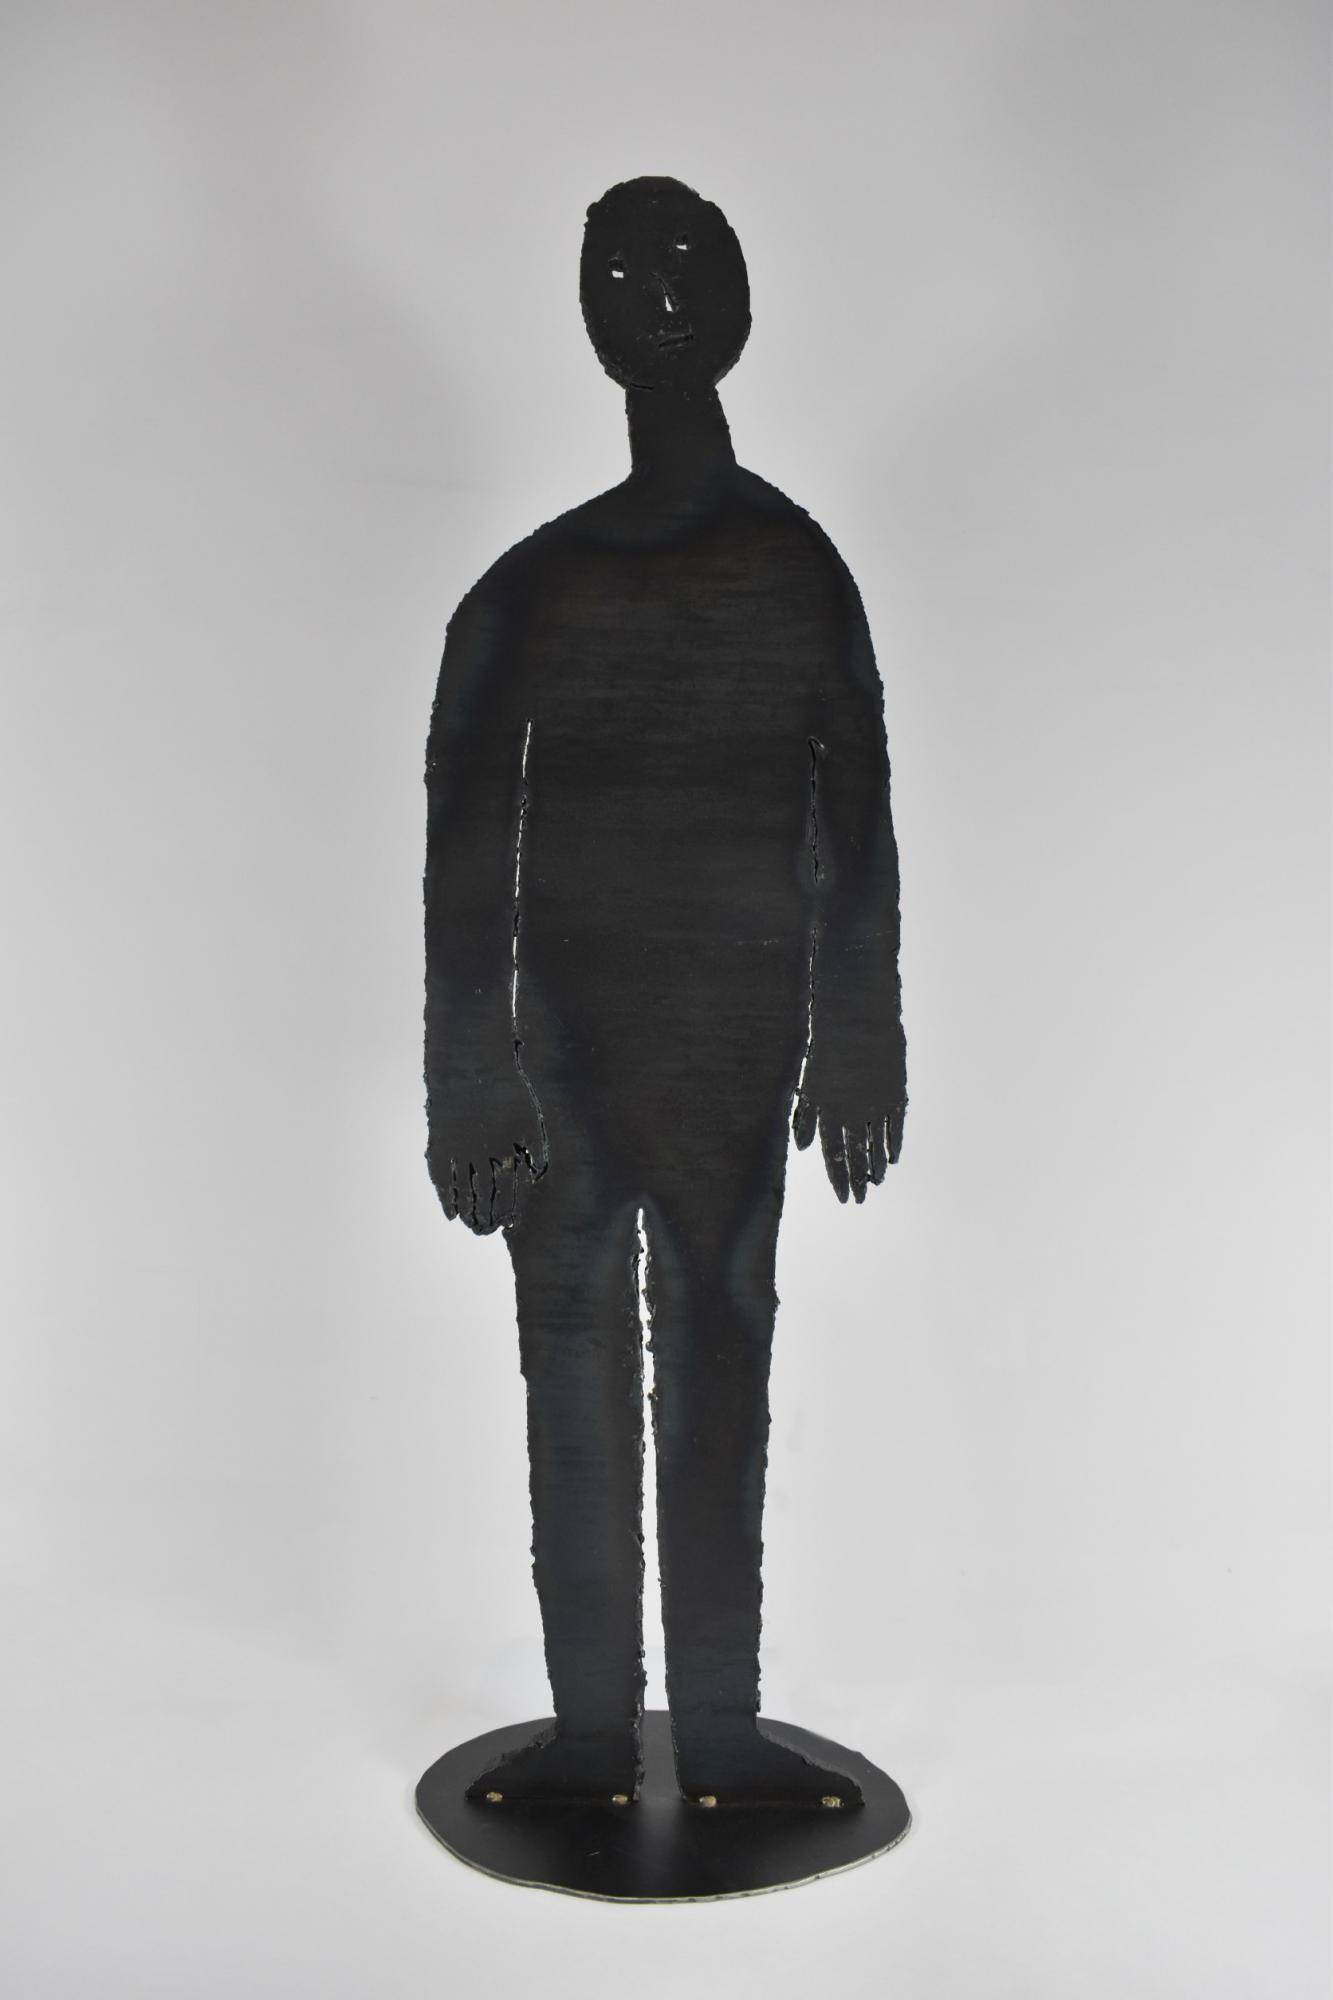 Human 凡人(L) NO Sooncheon 盧淳天 (South Korea, 1981-) Steel 鐵 91.5 x 26.5 x 1.5 cm 2015